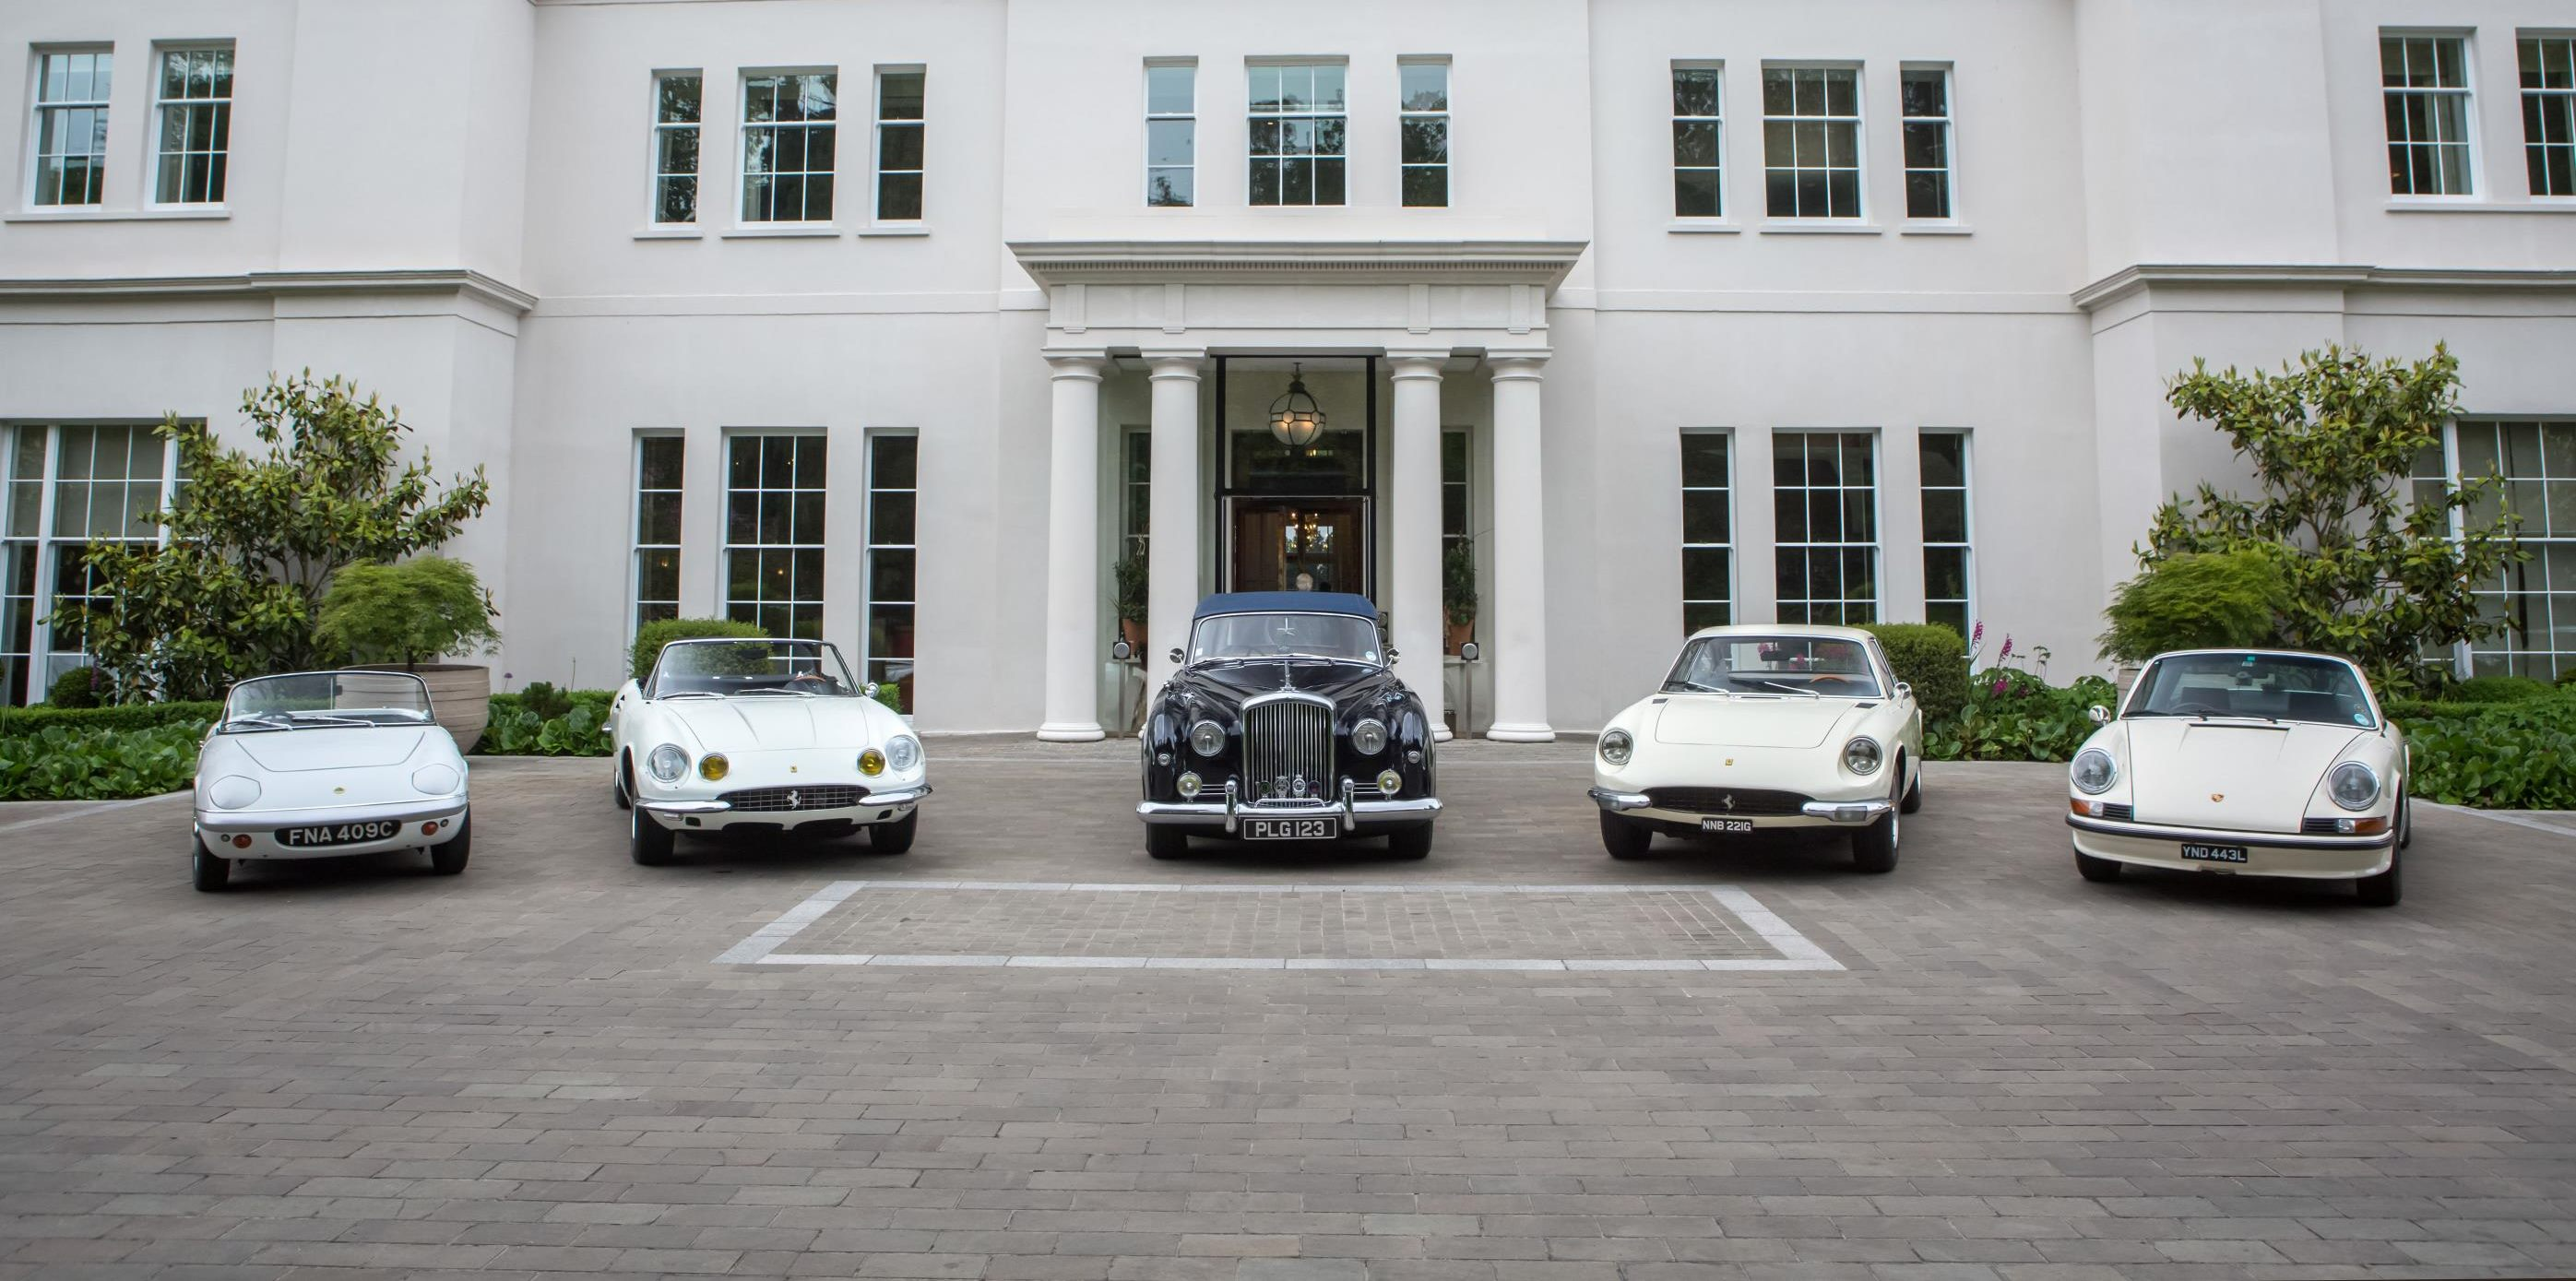 Members of the Concours of Elegance Committee at Coworth Park in Ascot, UK